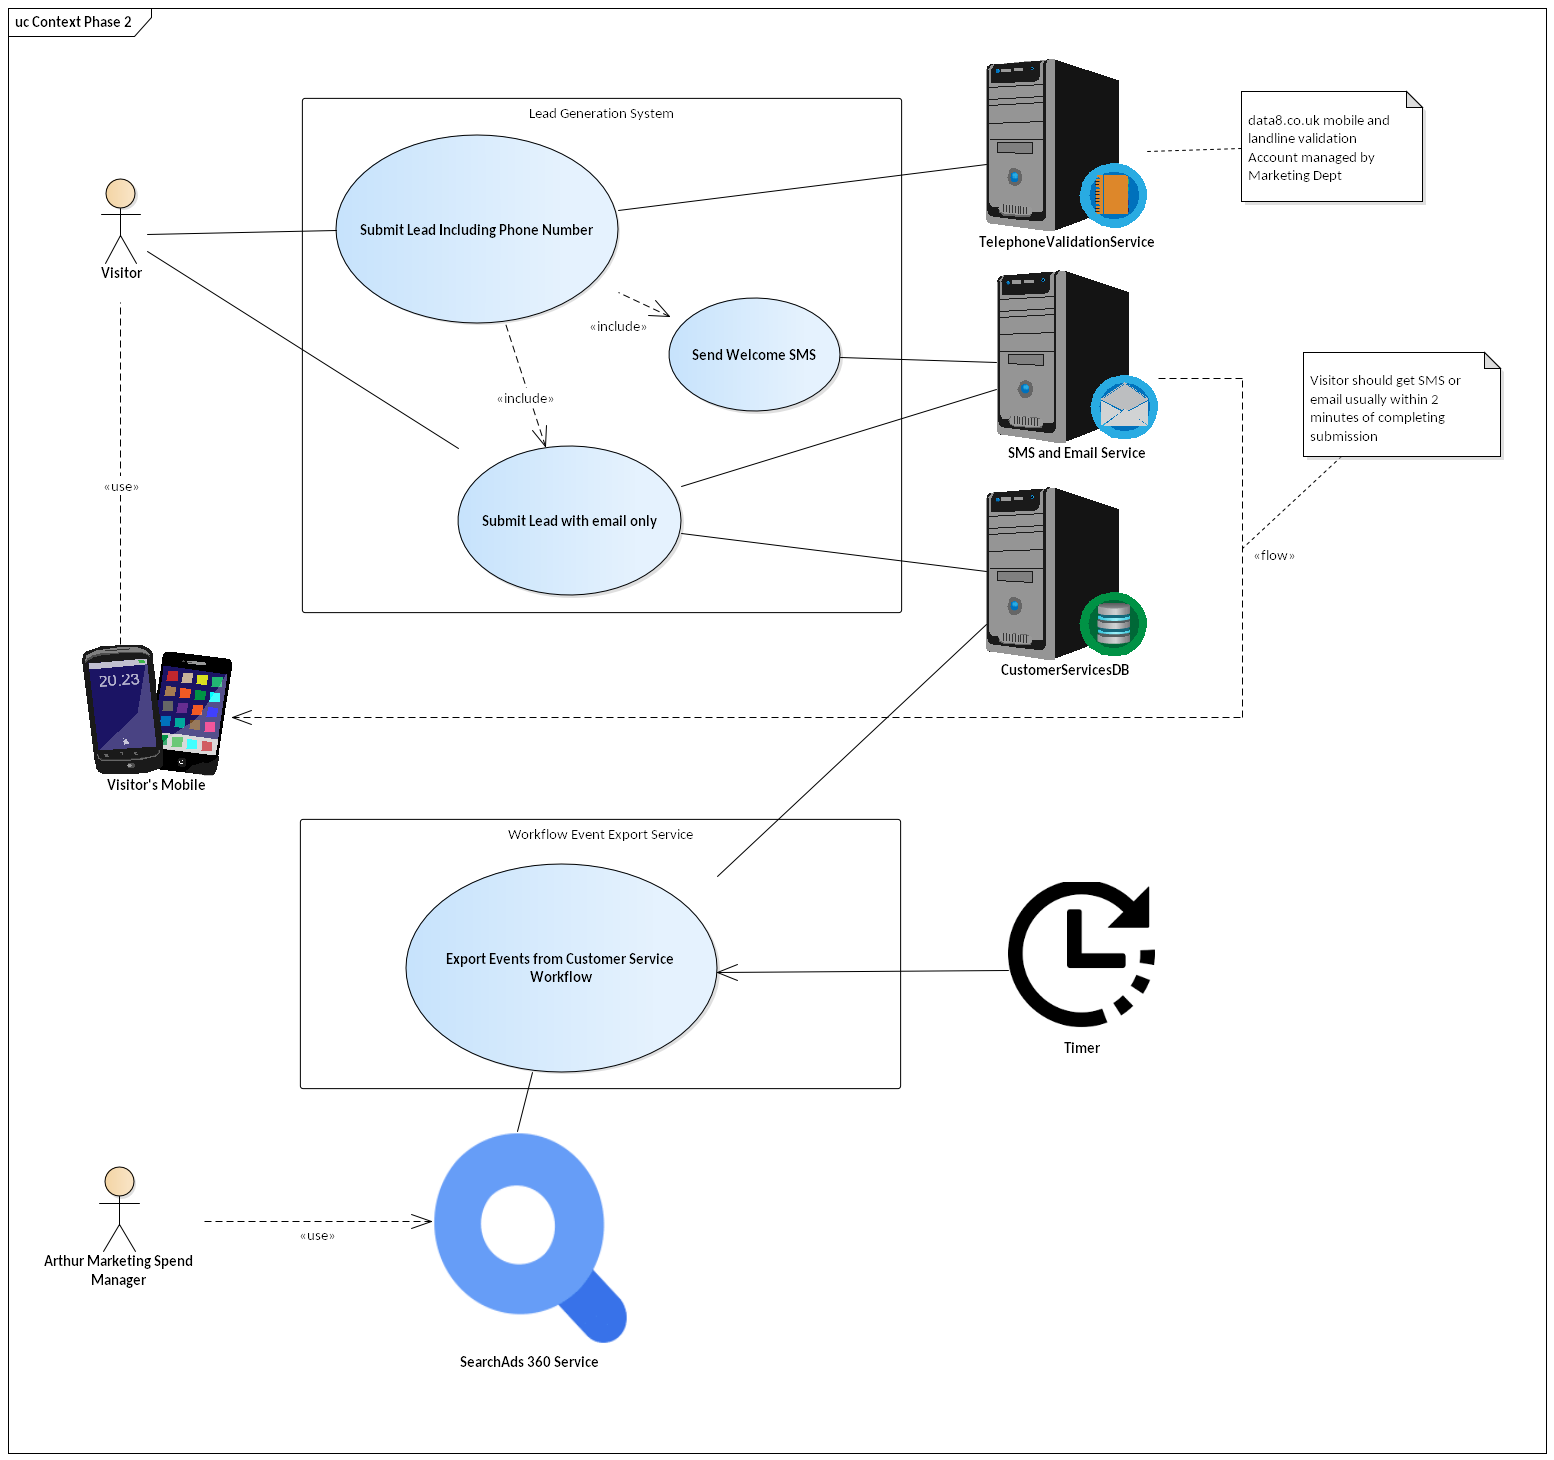 Use Case diagram with several use cases, 2 user actors and 5 machine actors.